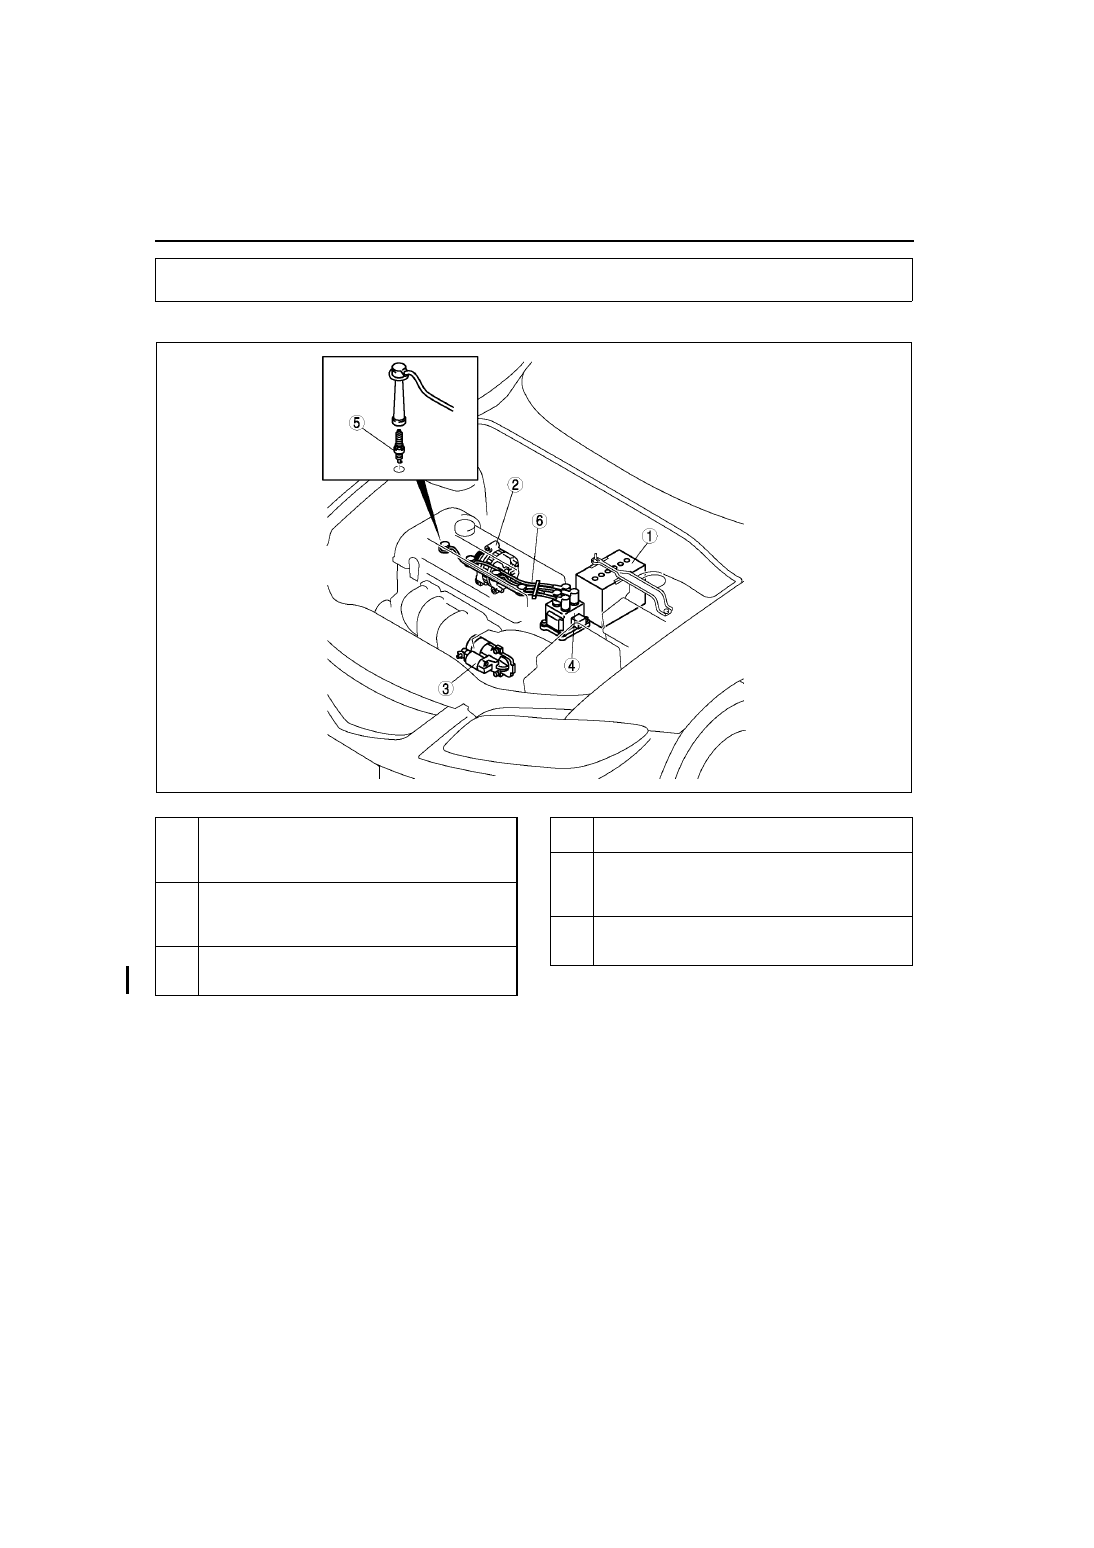 Toyota Sienna 2010-2018 Owners Manual: Display contents